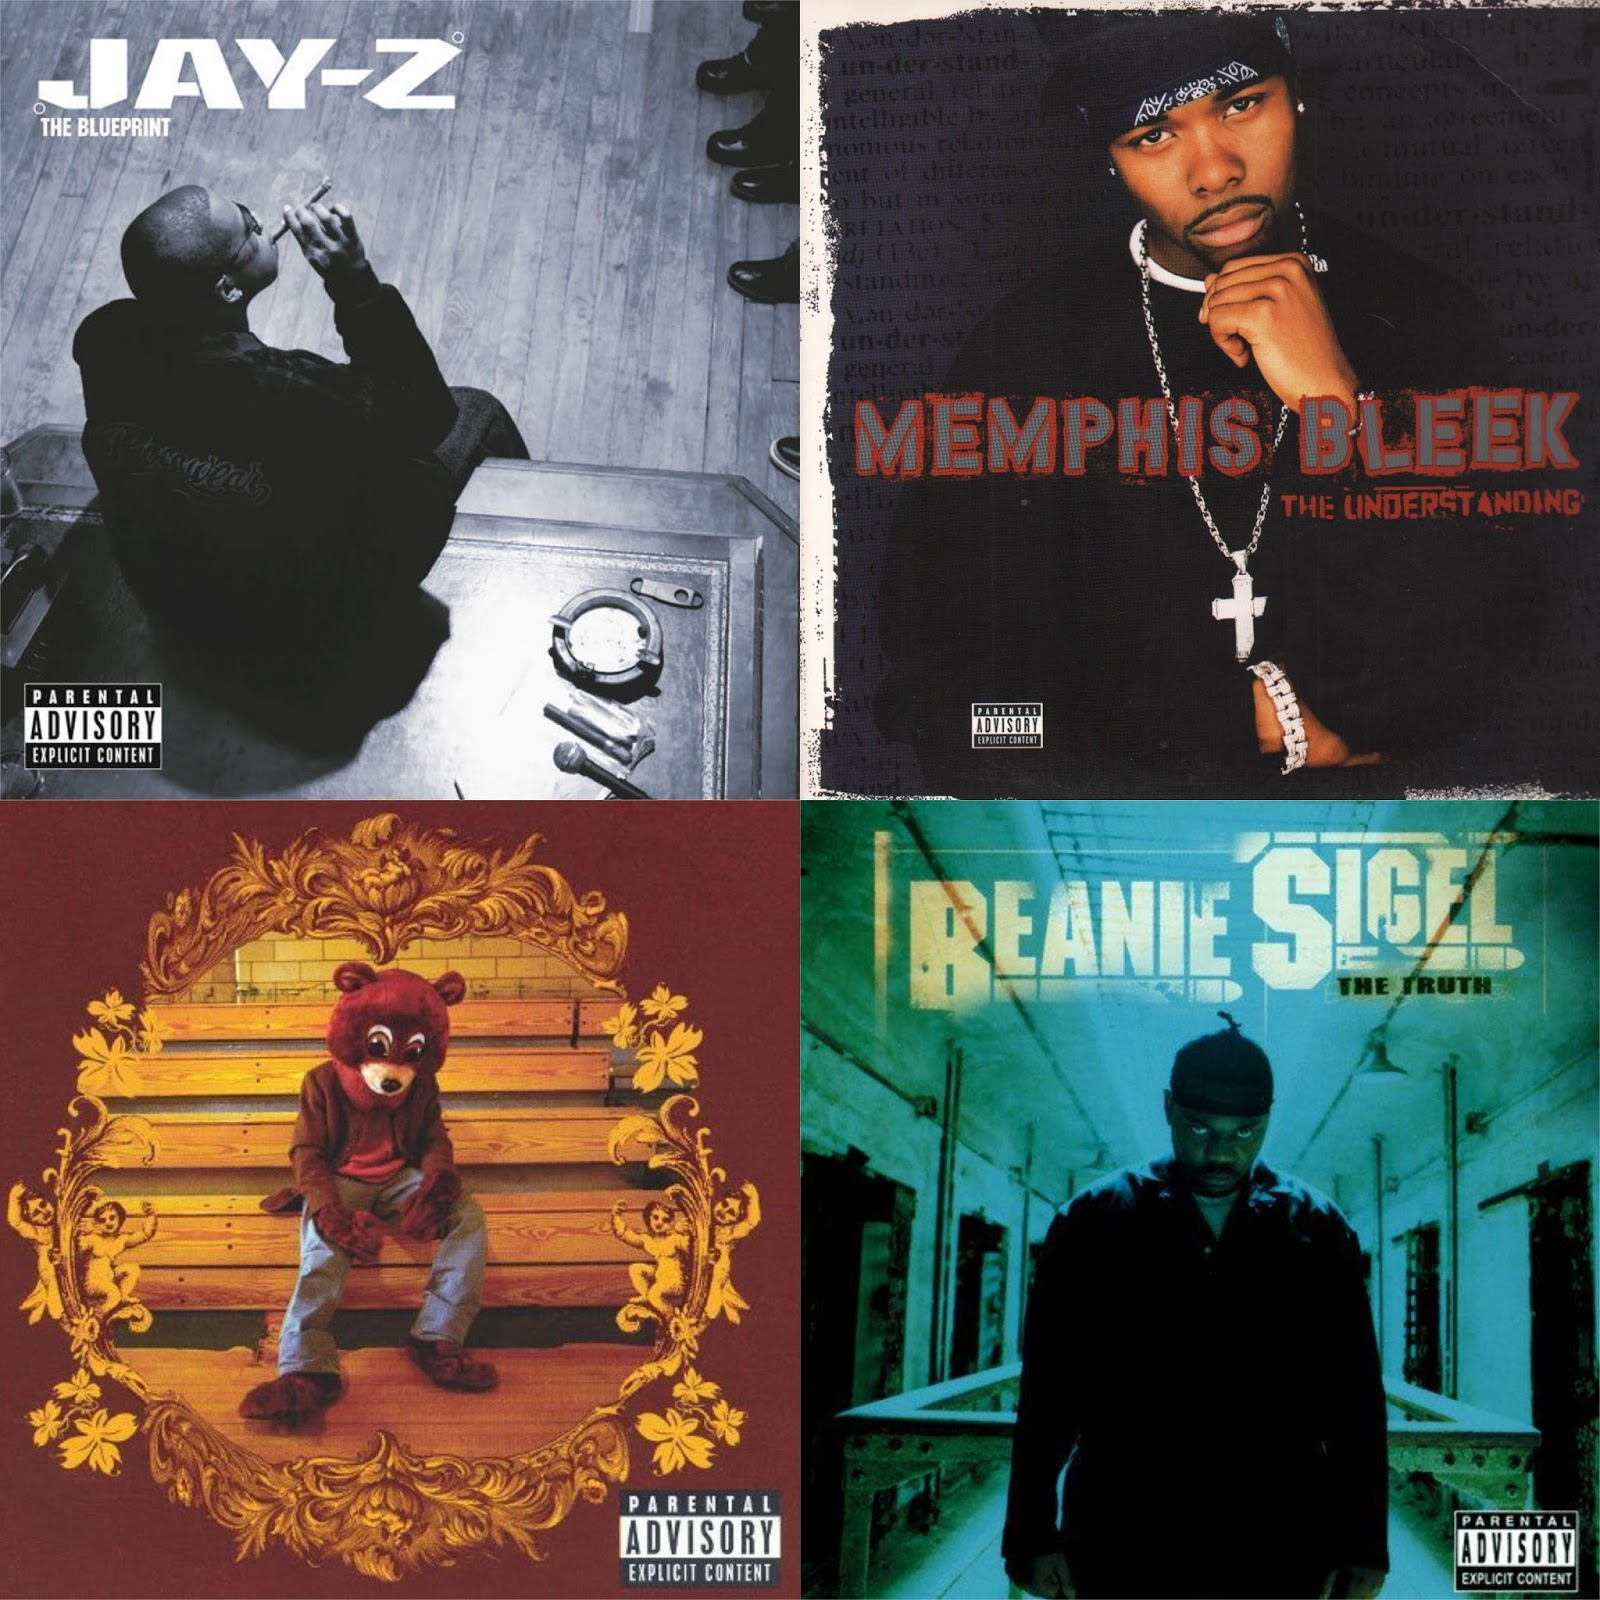 DAR Hip Hop: The 10 Greatest Roc-A-Fella Albums From 2000